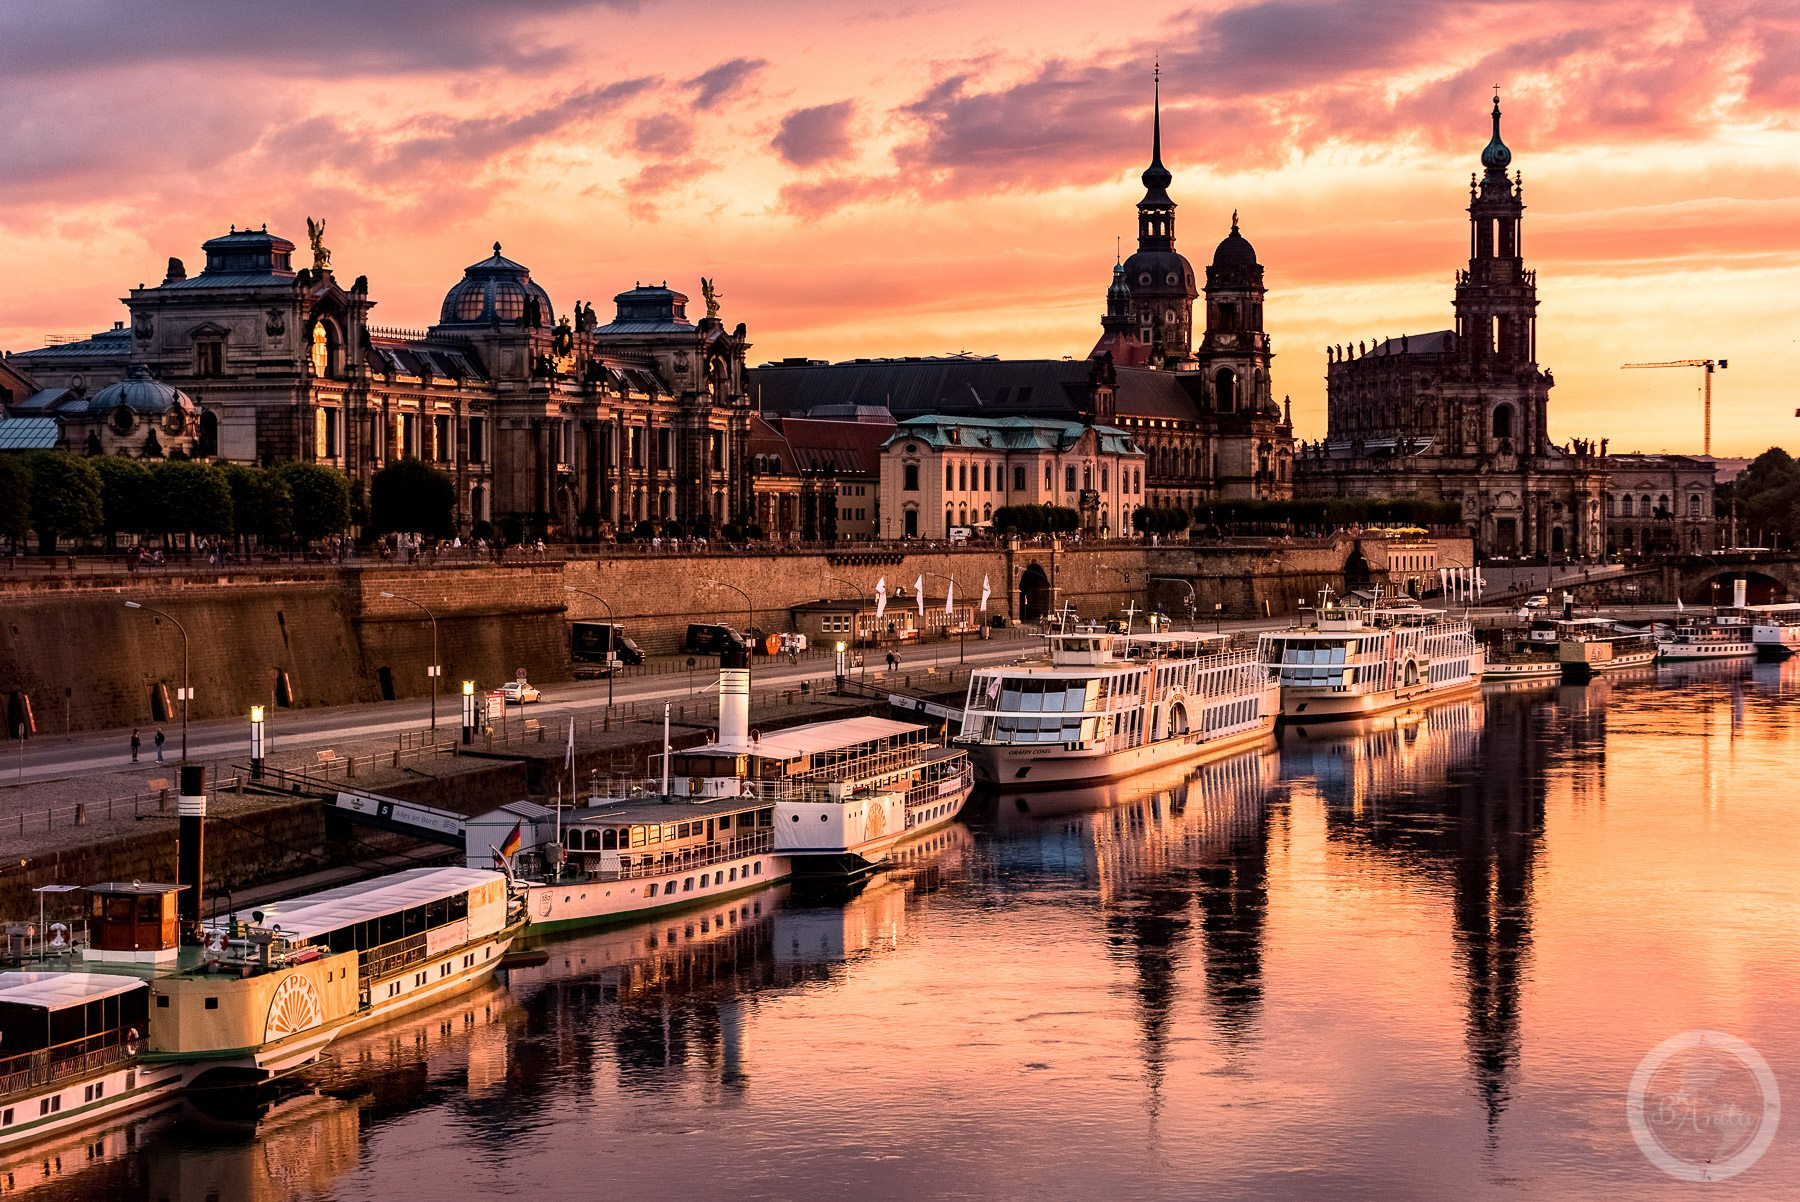 Old Town, Dresden